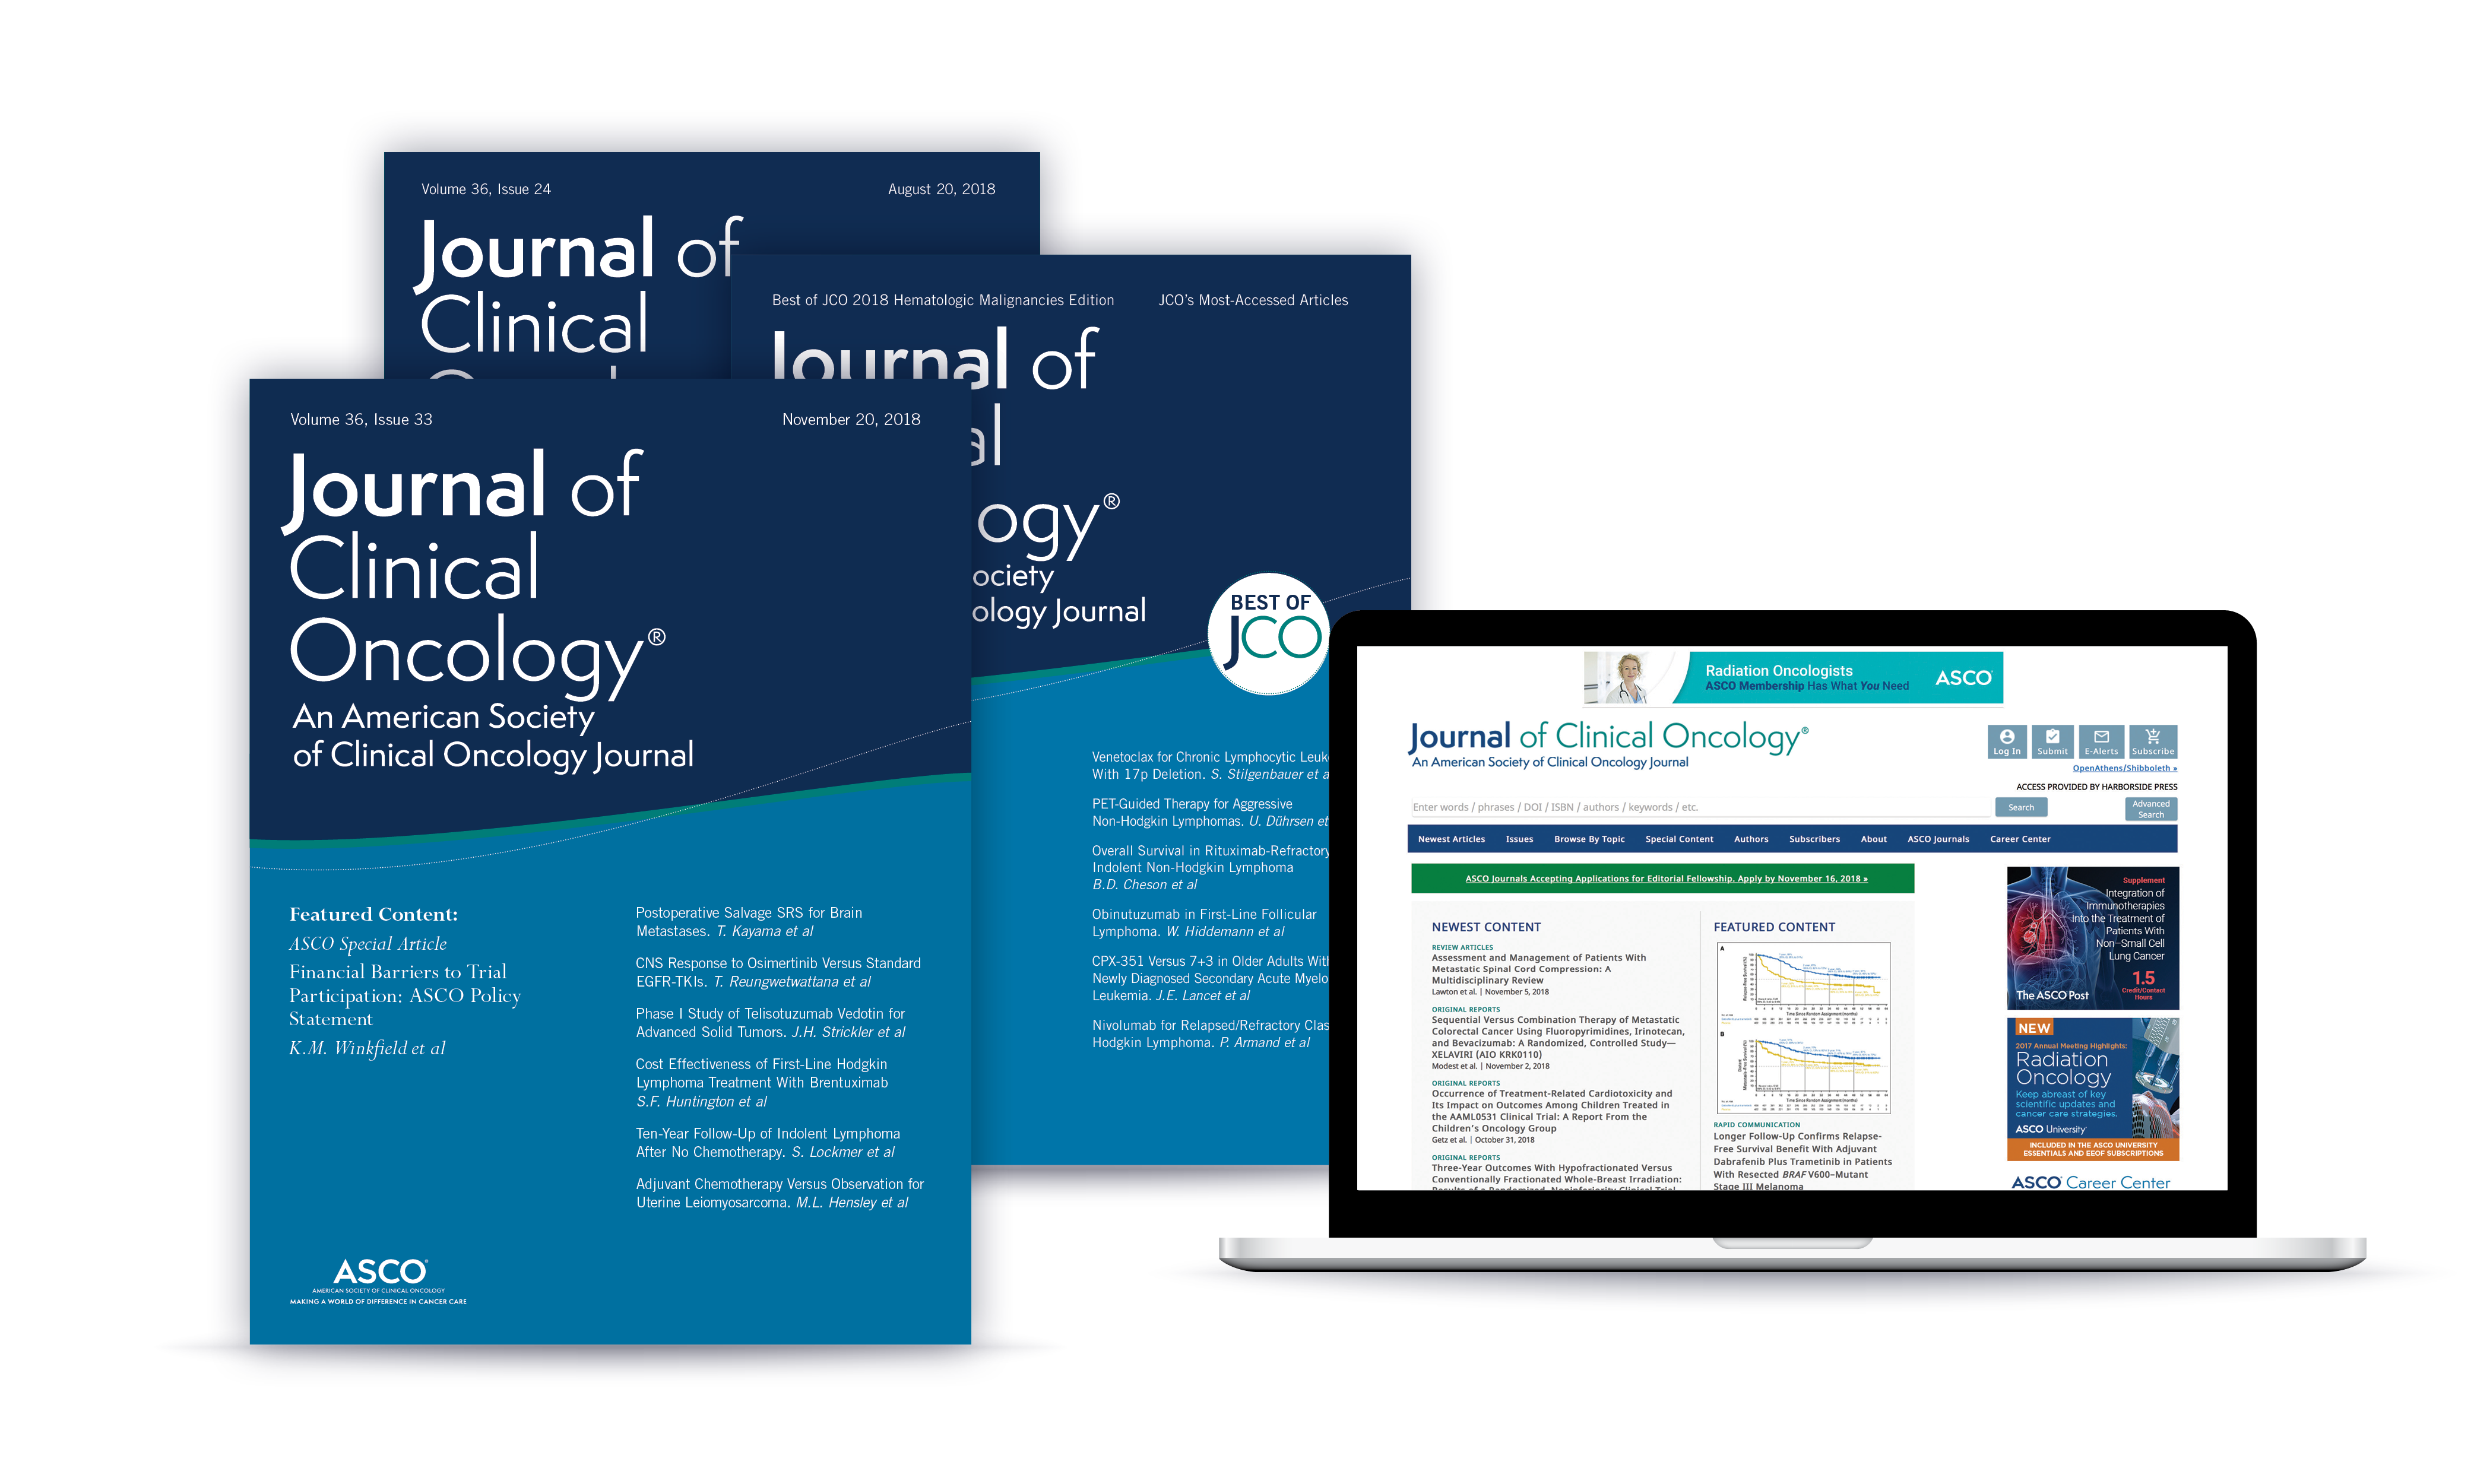 Journal of Clinical Oncology Product Image